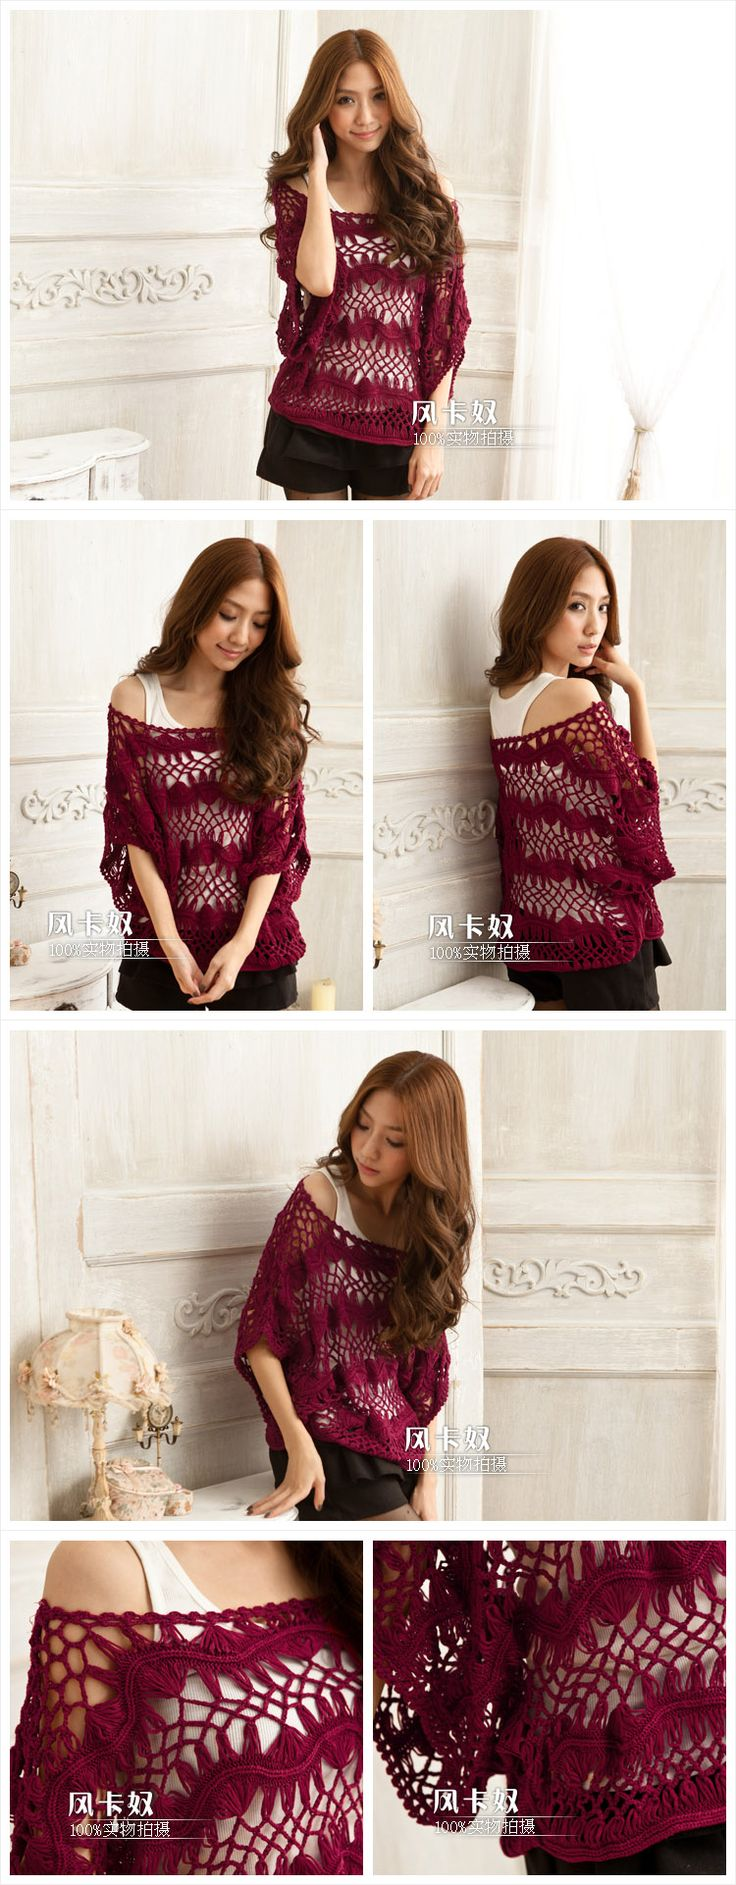 hairpin lace crochet top